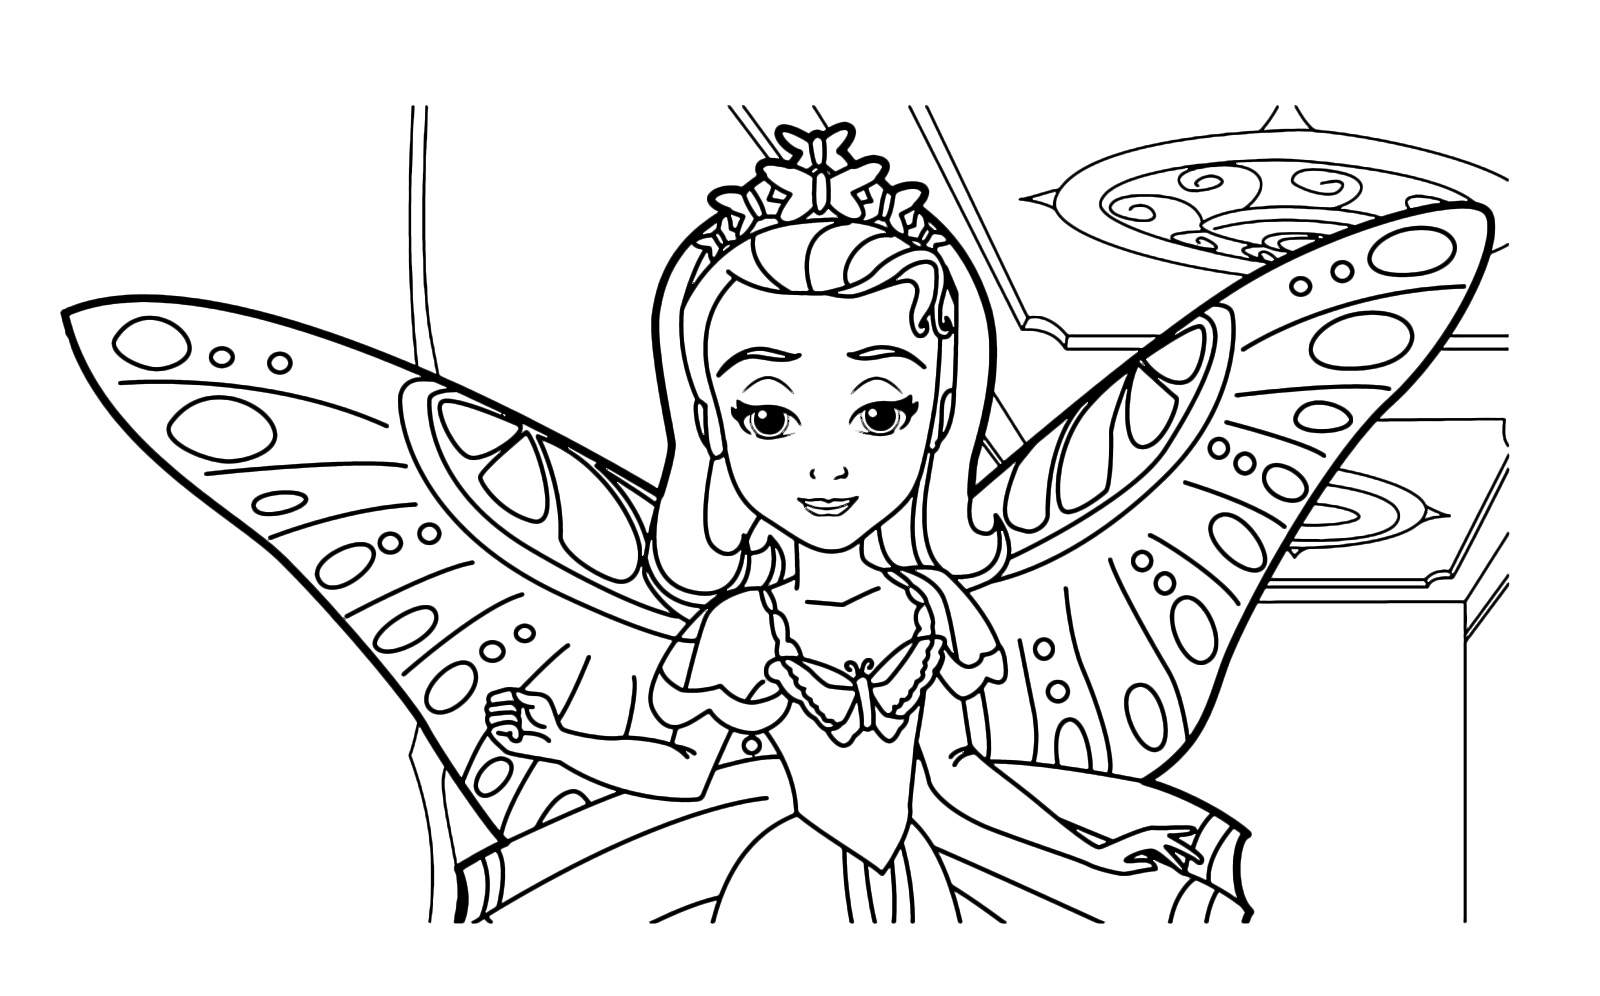 Sofia the First - Princess Amber with butterfly wings